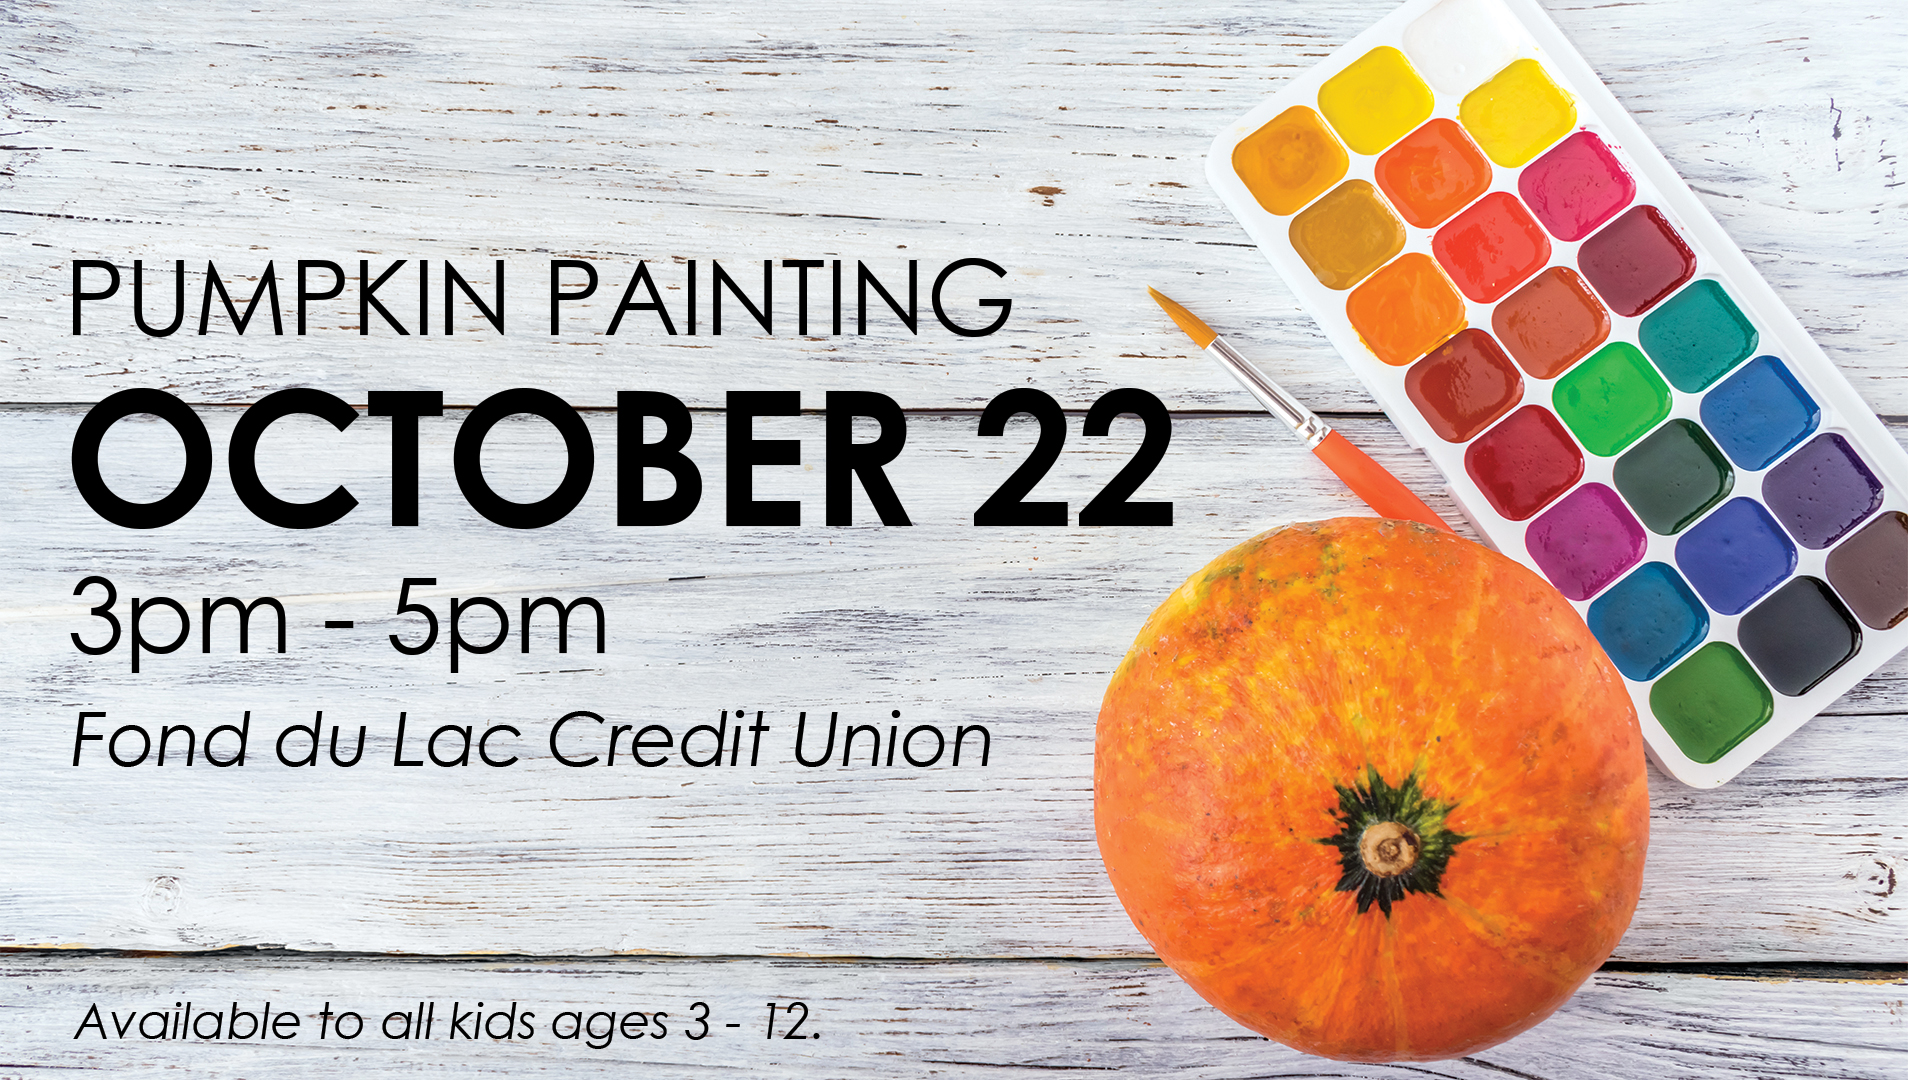 Kids Pumpkin Painting, October 22 from 3pm to 5pm